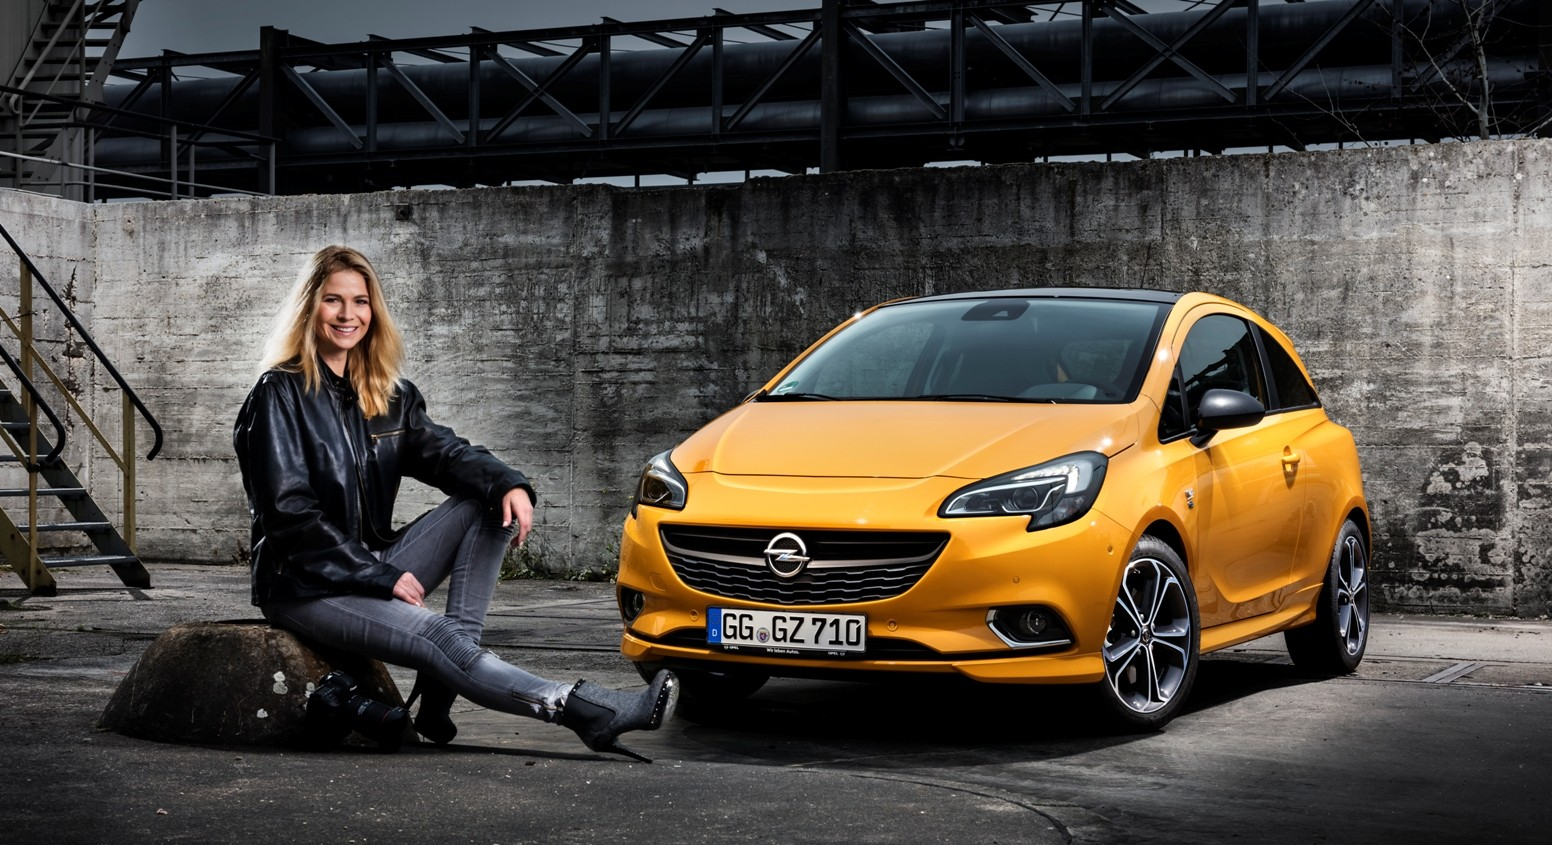 Pretty Girl Wallpapers Hd Opel Corsa E Now Available With R4 0 Intellilink